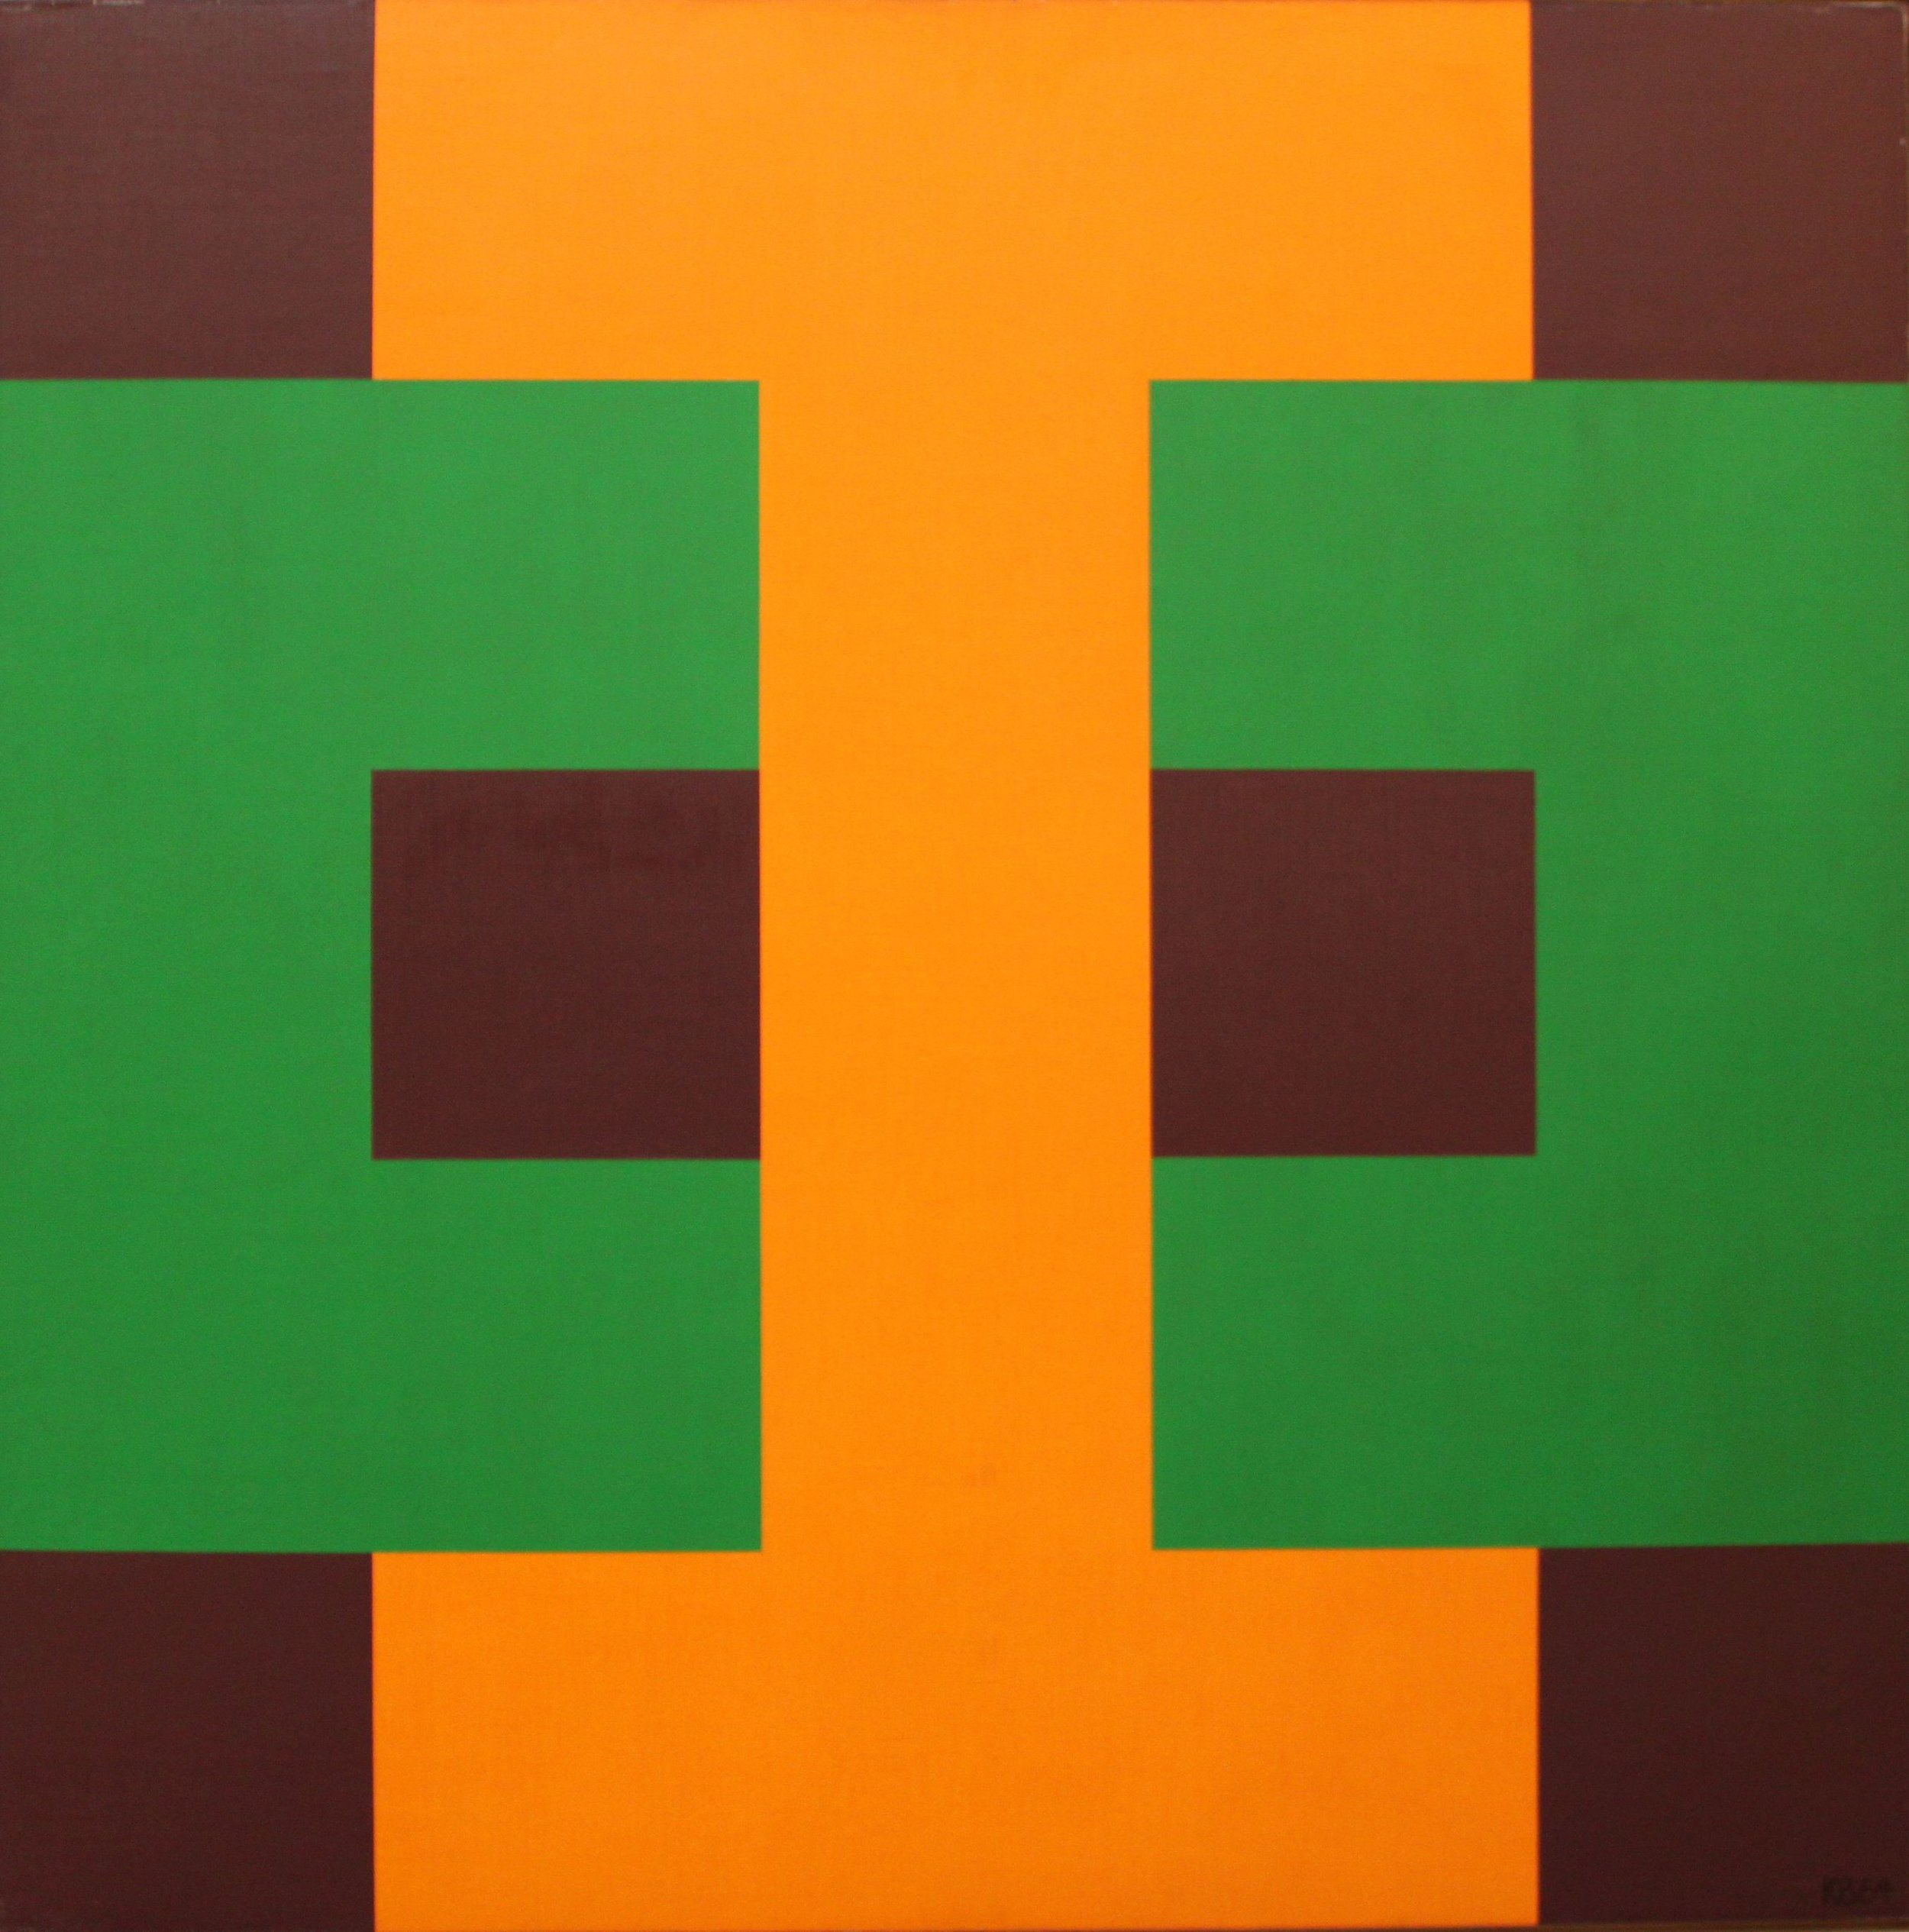 #45 , 1964  oil on canvas 42 x 42 inches; 106.7 x 106.7 centimeters